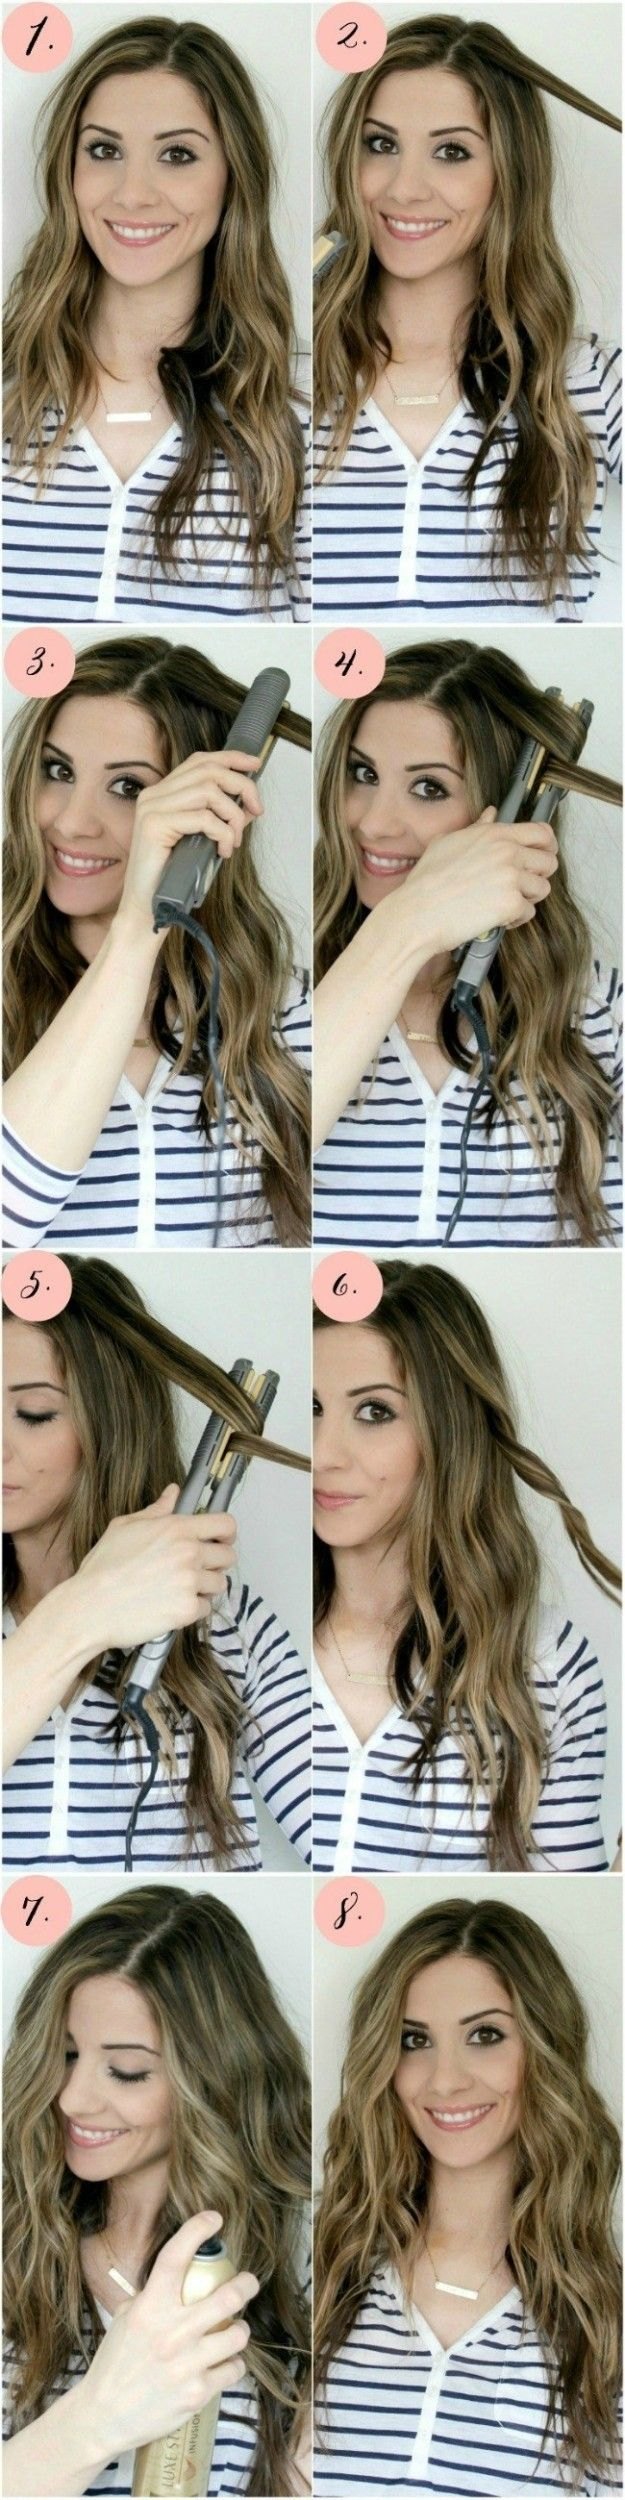 17 Useful Hairstyling Hacks You Should Know About